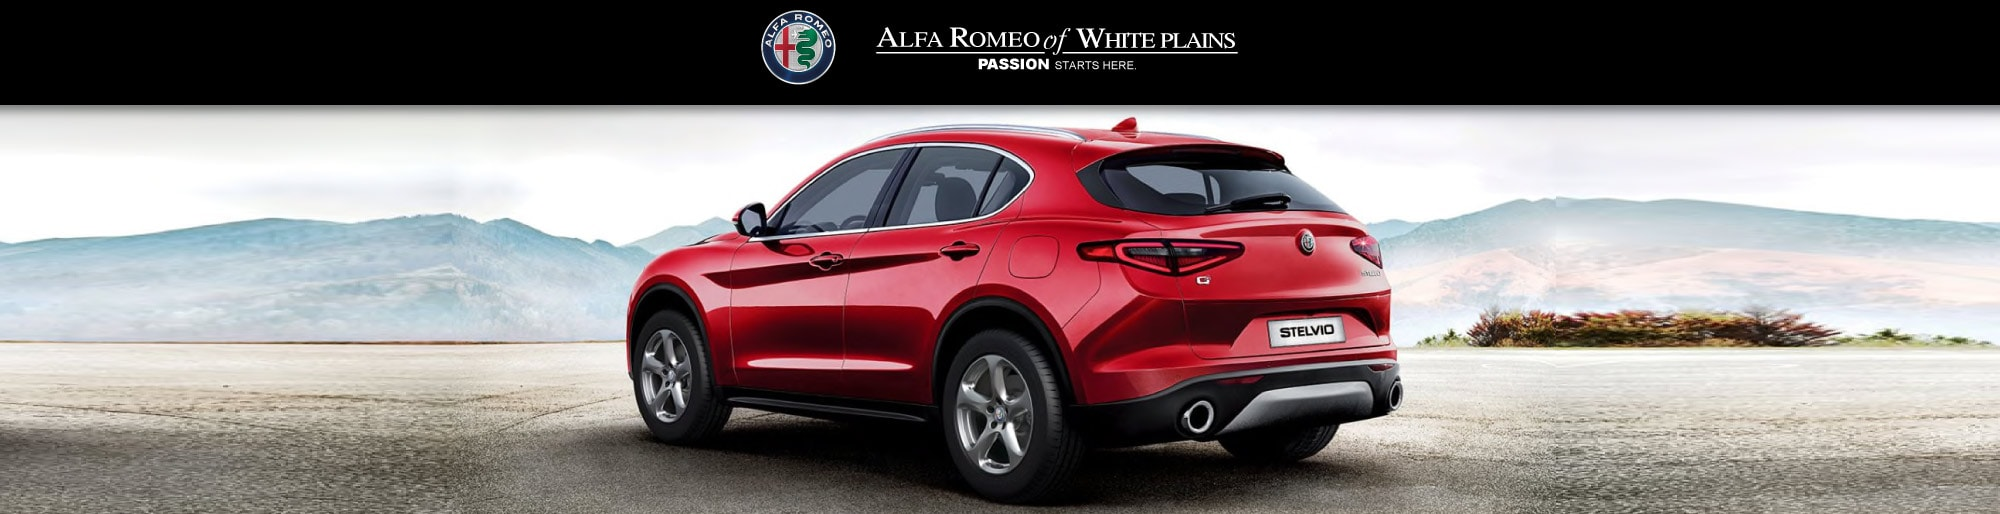 Alfa Romeo Reviews Image